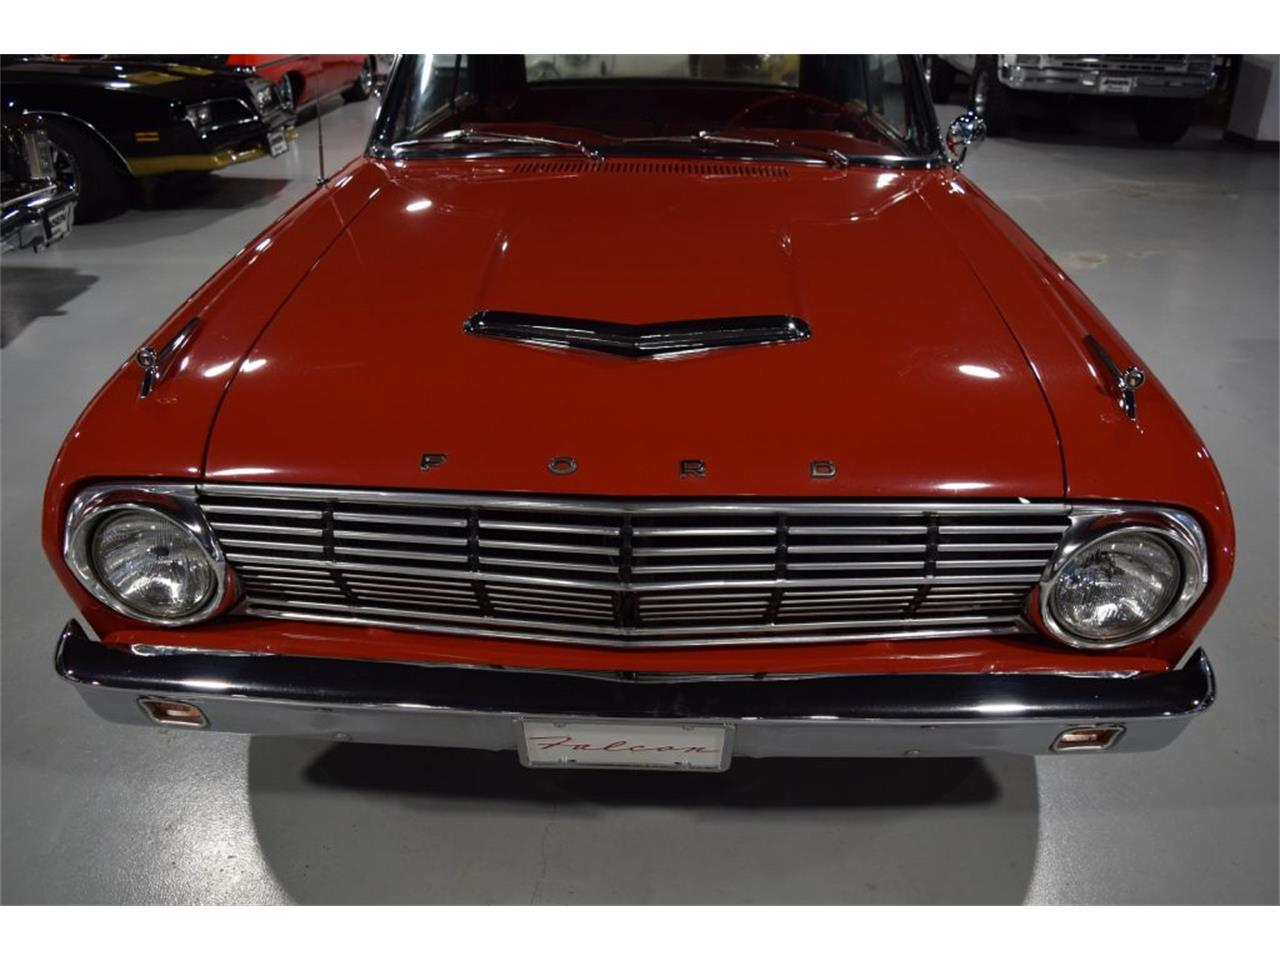 1963 Ford Falcon Futura for sale in Sioux City, IA – photo 3